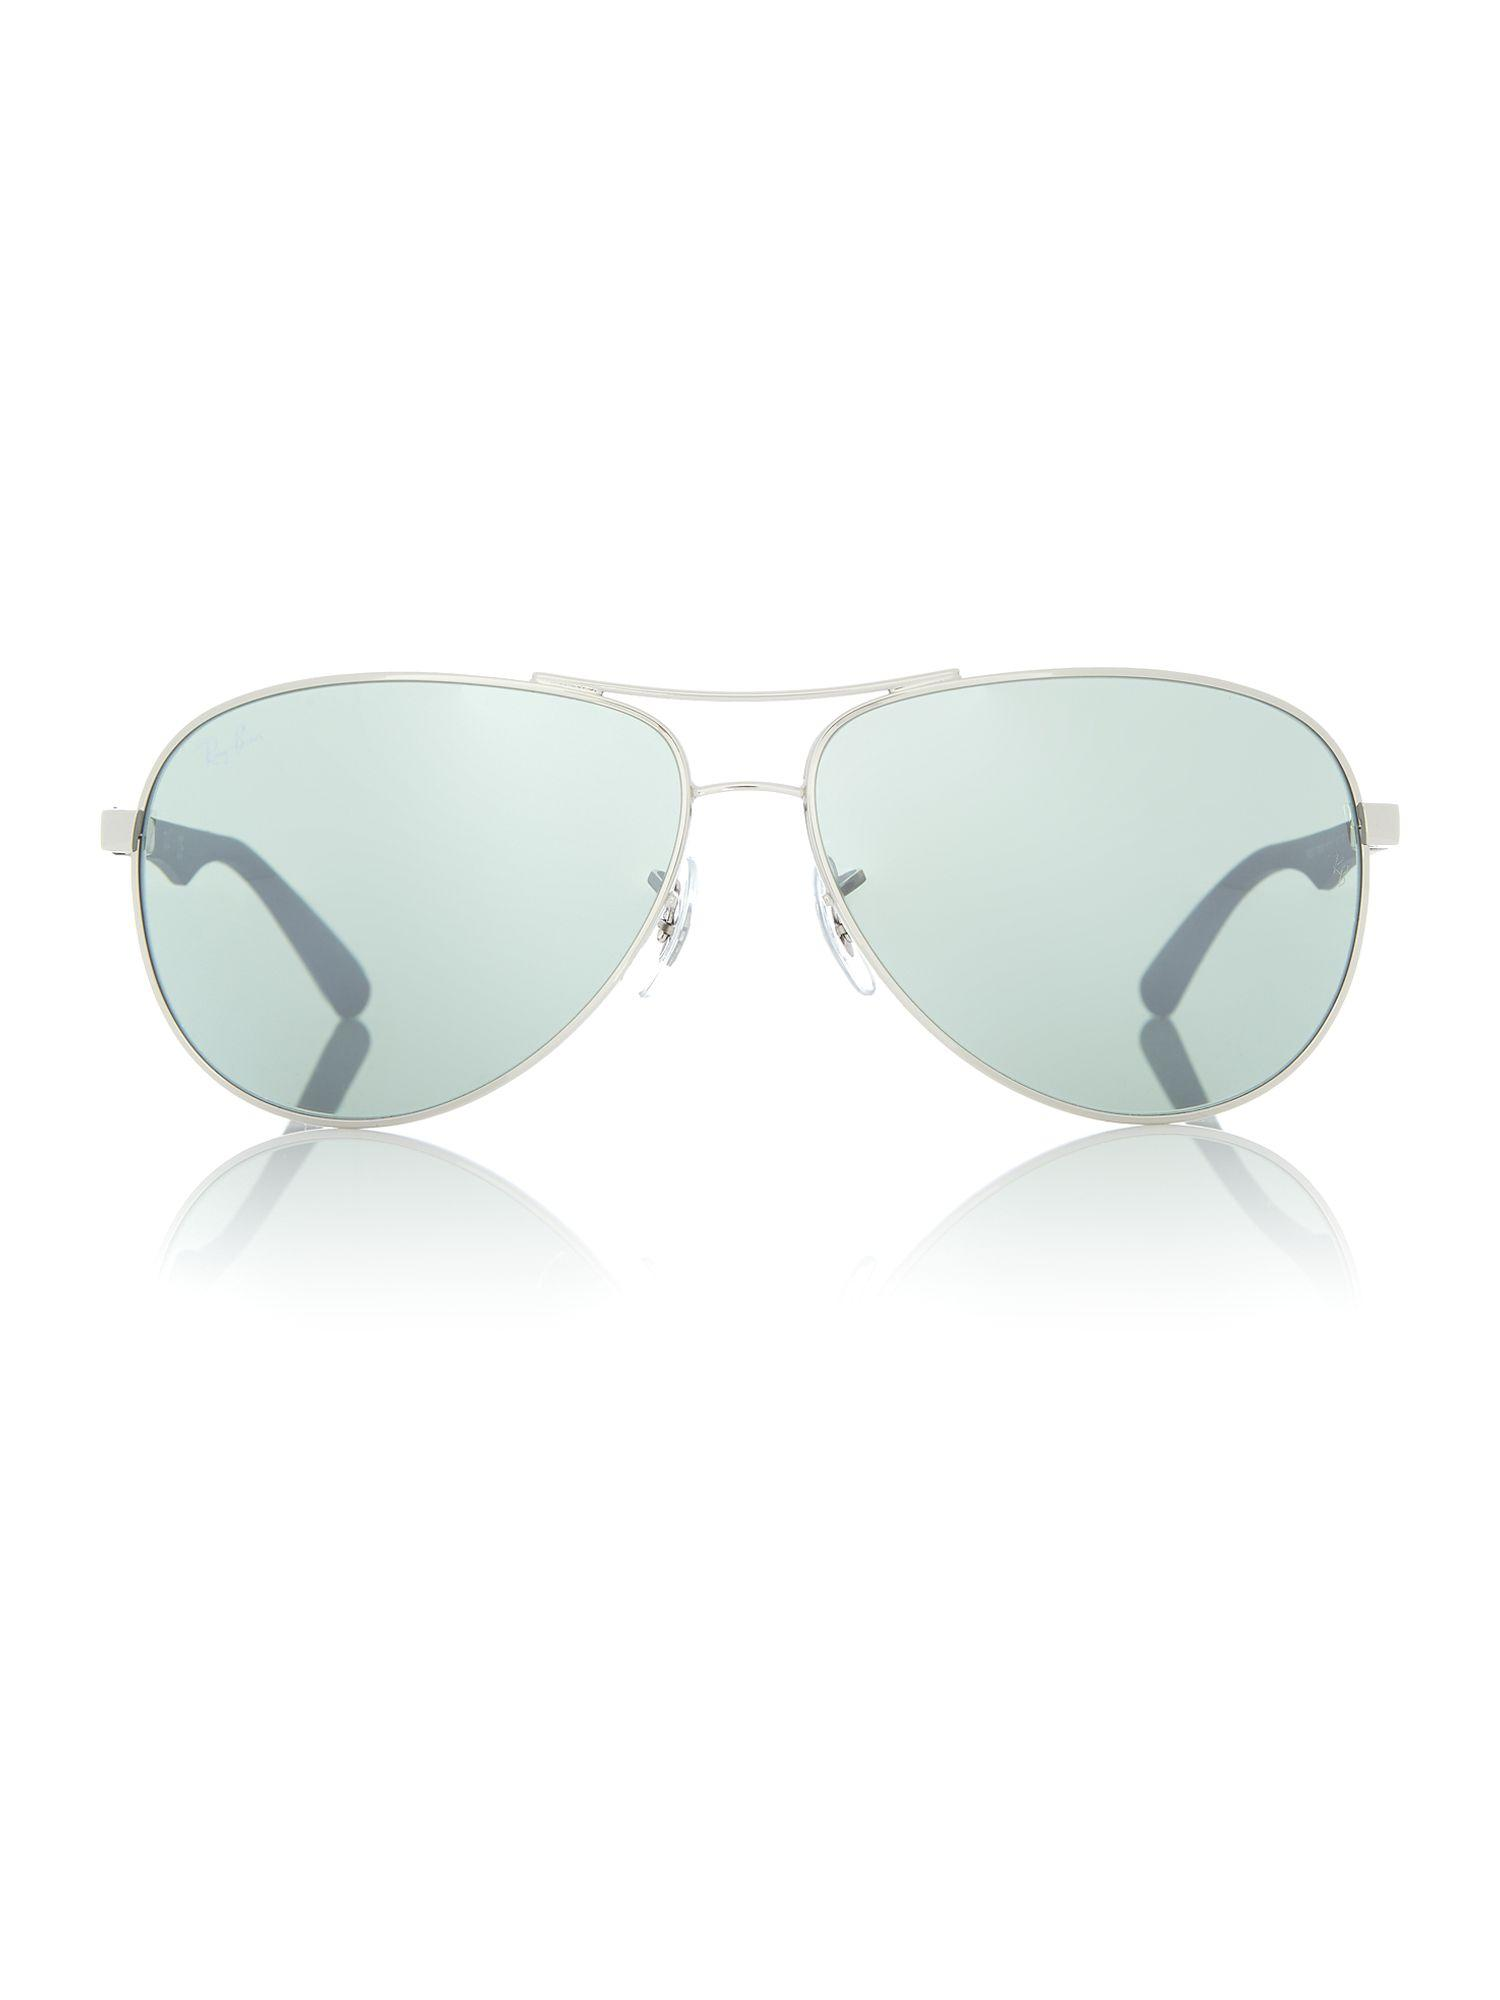 Ray-Ban Silver Rb8313 Pilot Sunglasses for Men